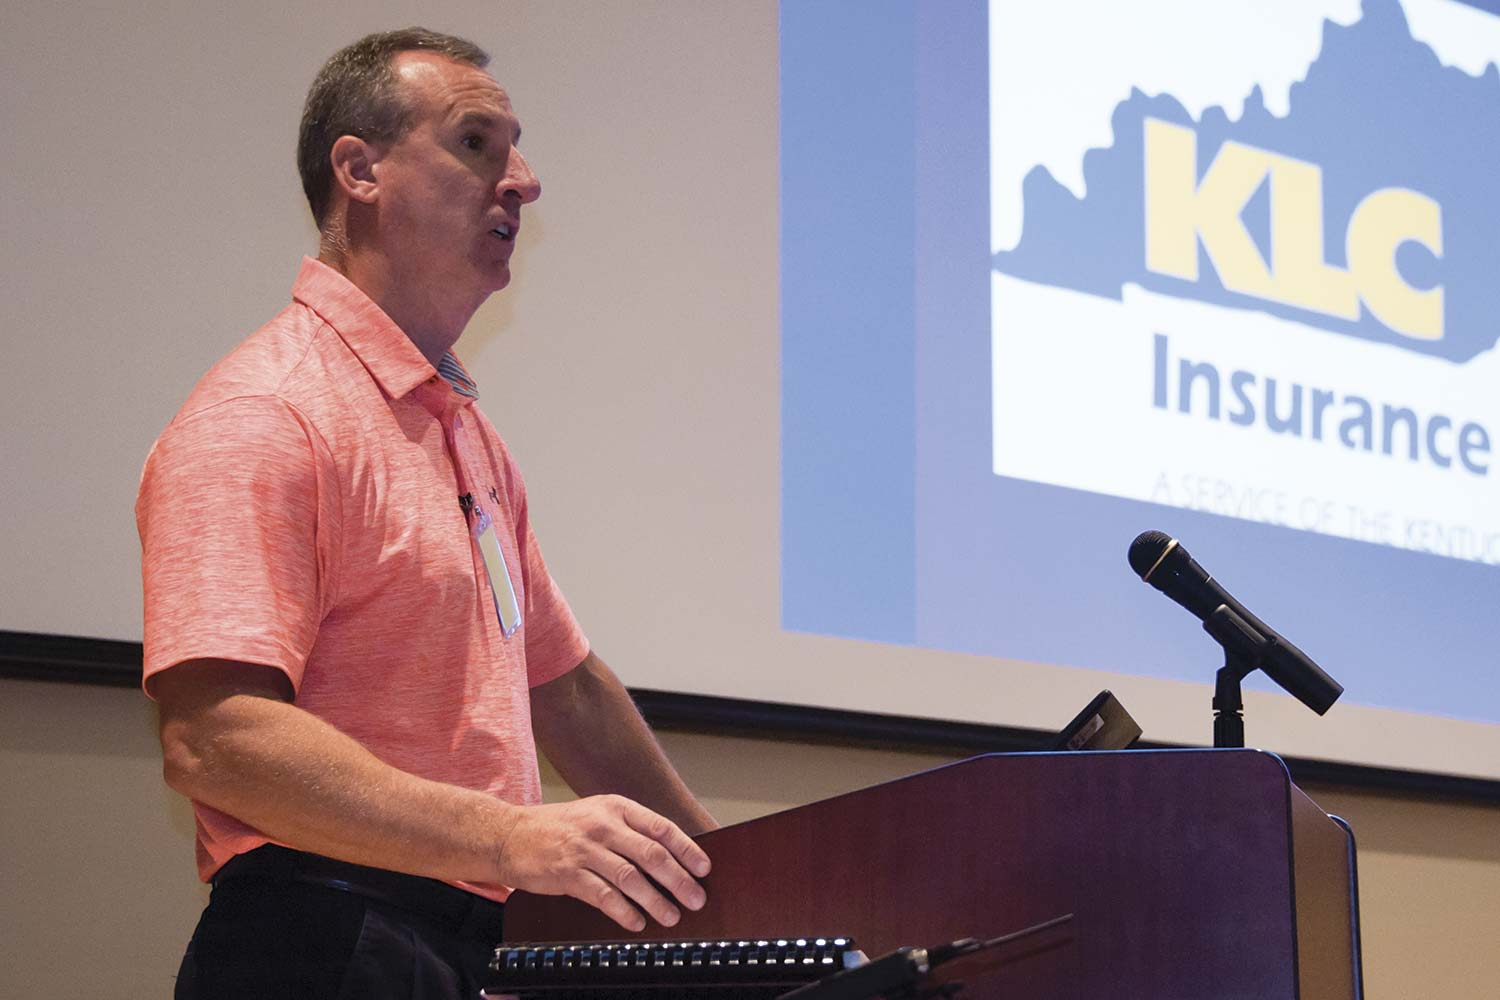 Kentucky League of Cities Law Enforcement Consultant Troy Pitcock speaks during a drone training conducted by KLC. Training regarding topics that might include risk of injury or litigation are an important part of KLC's mission to mitigate risk. (Photo by Jim Robertson)